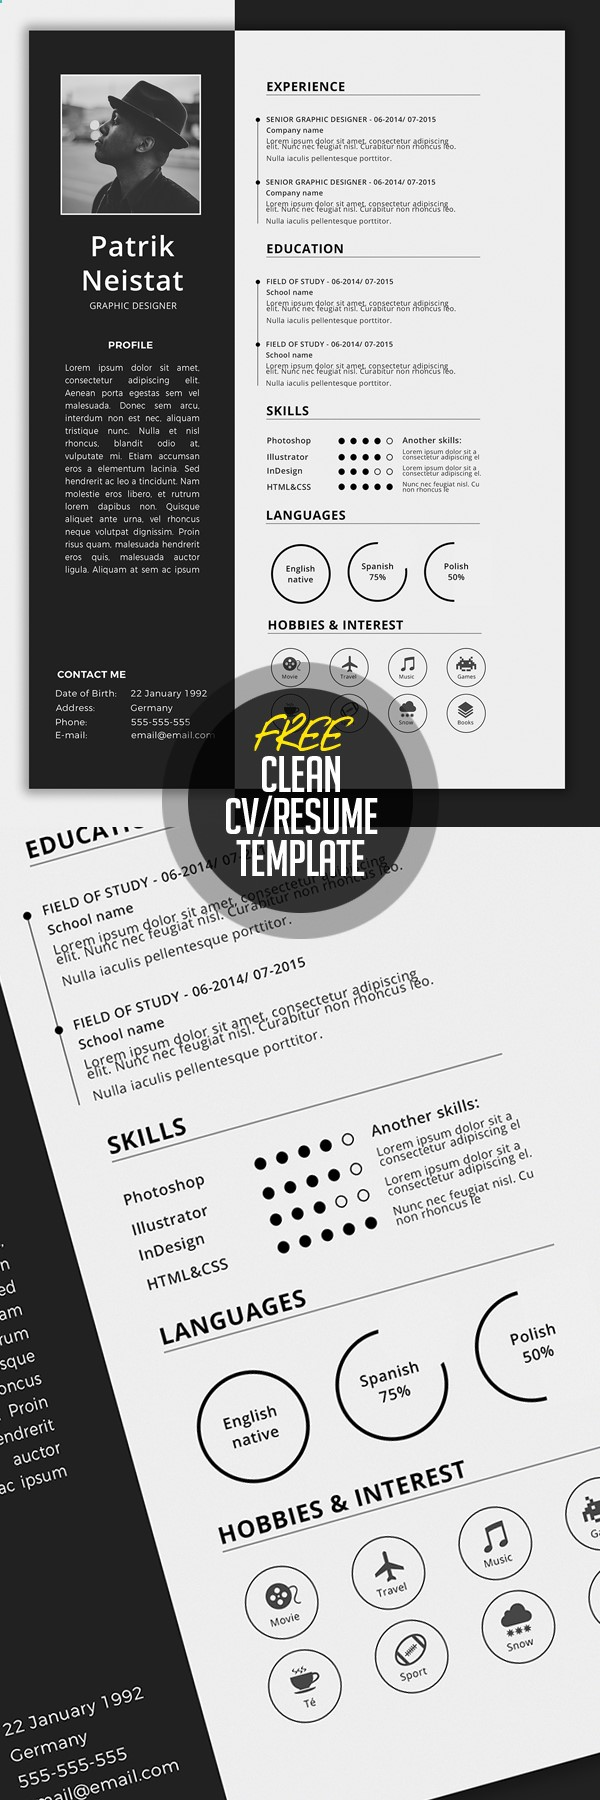 Resumes Free Download Simple Cvresume Template Free Download More  Paz  Pinterest .